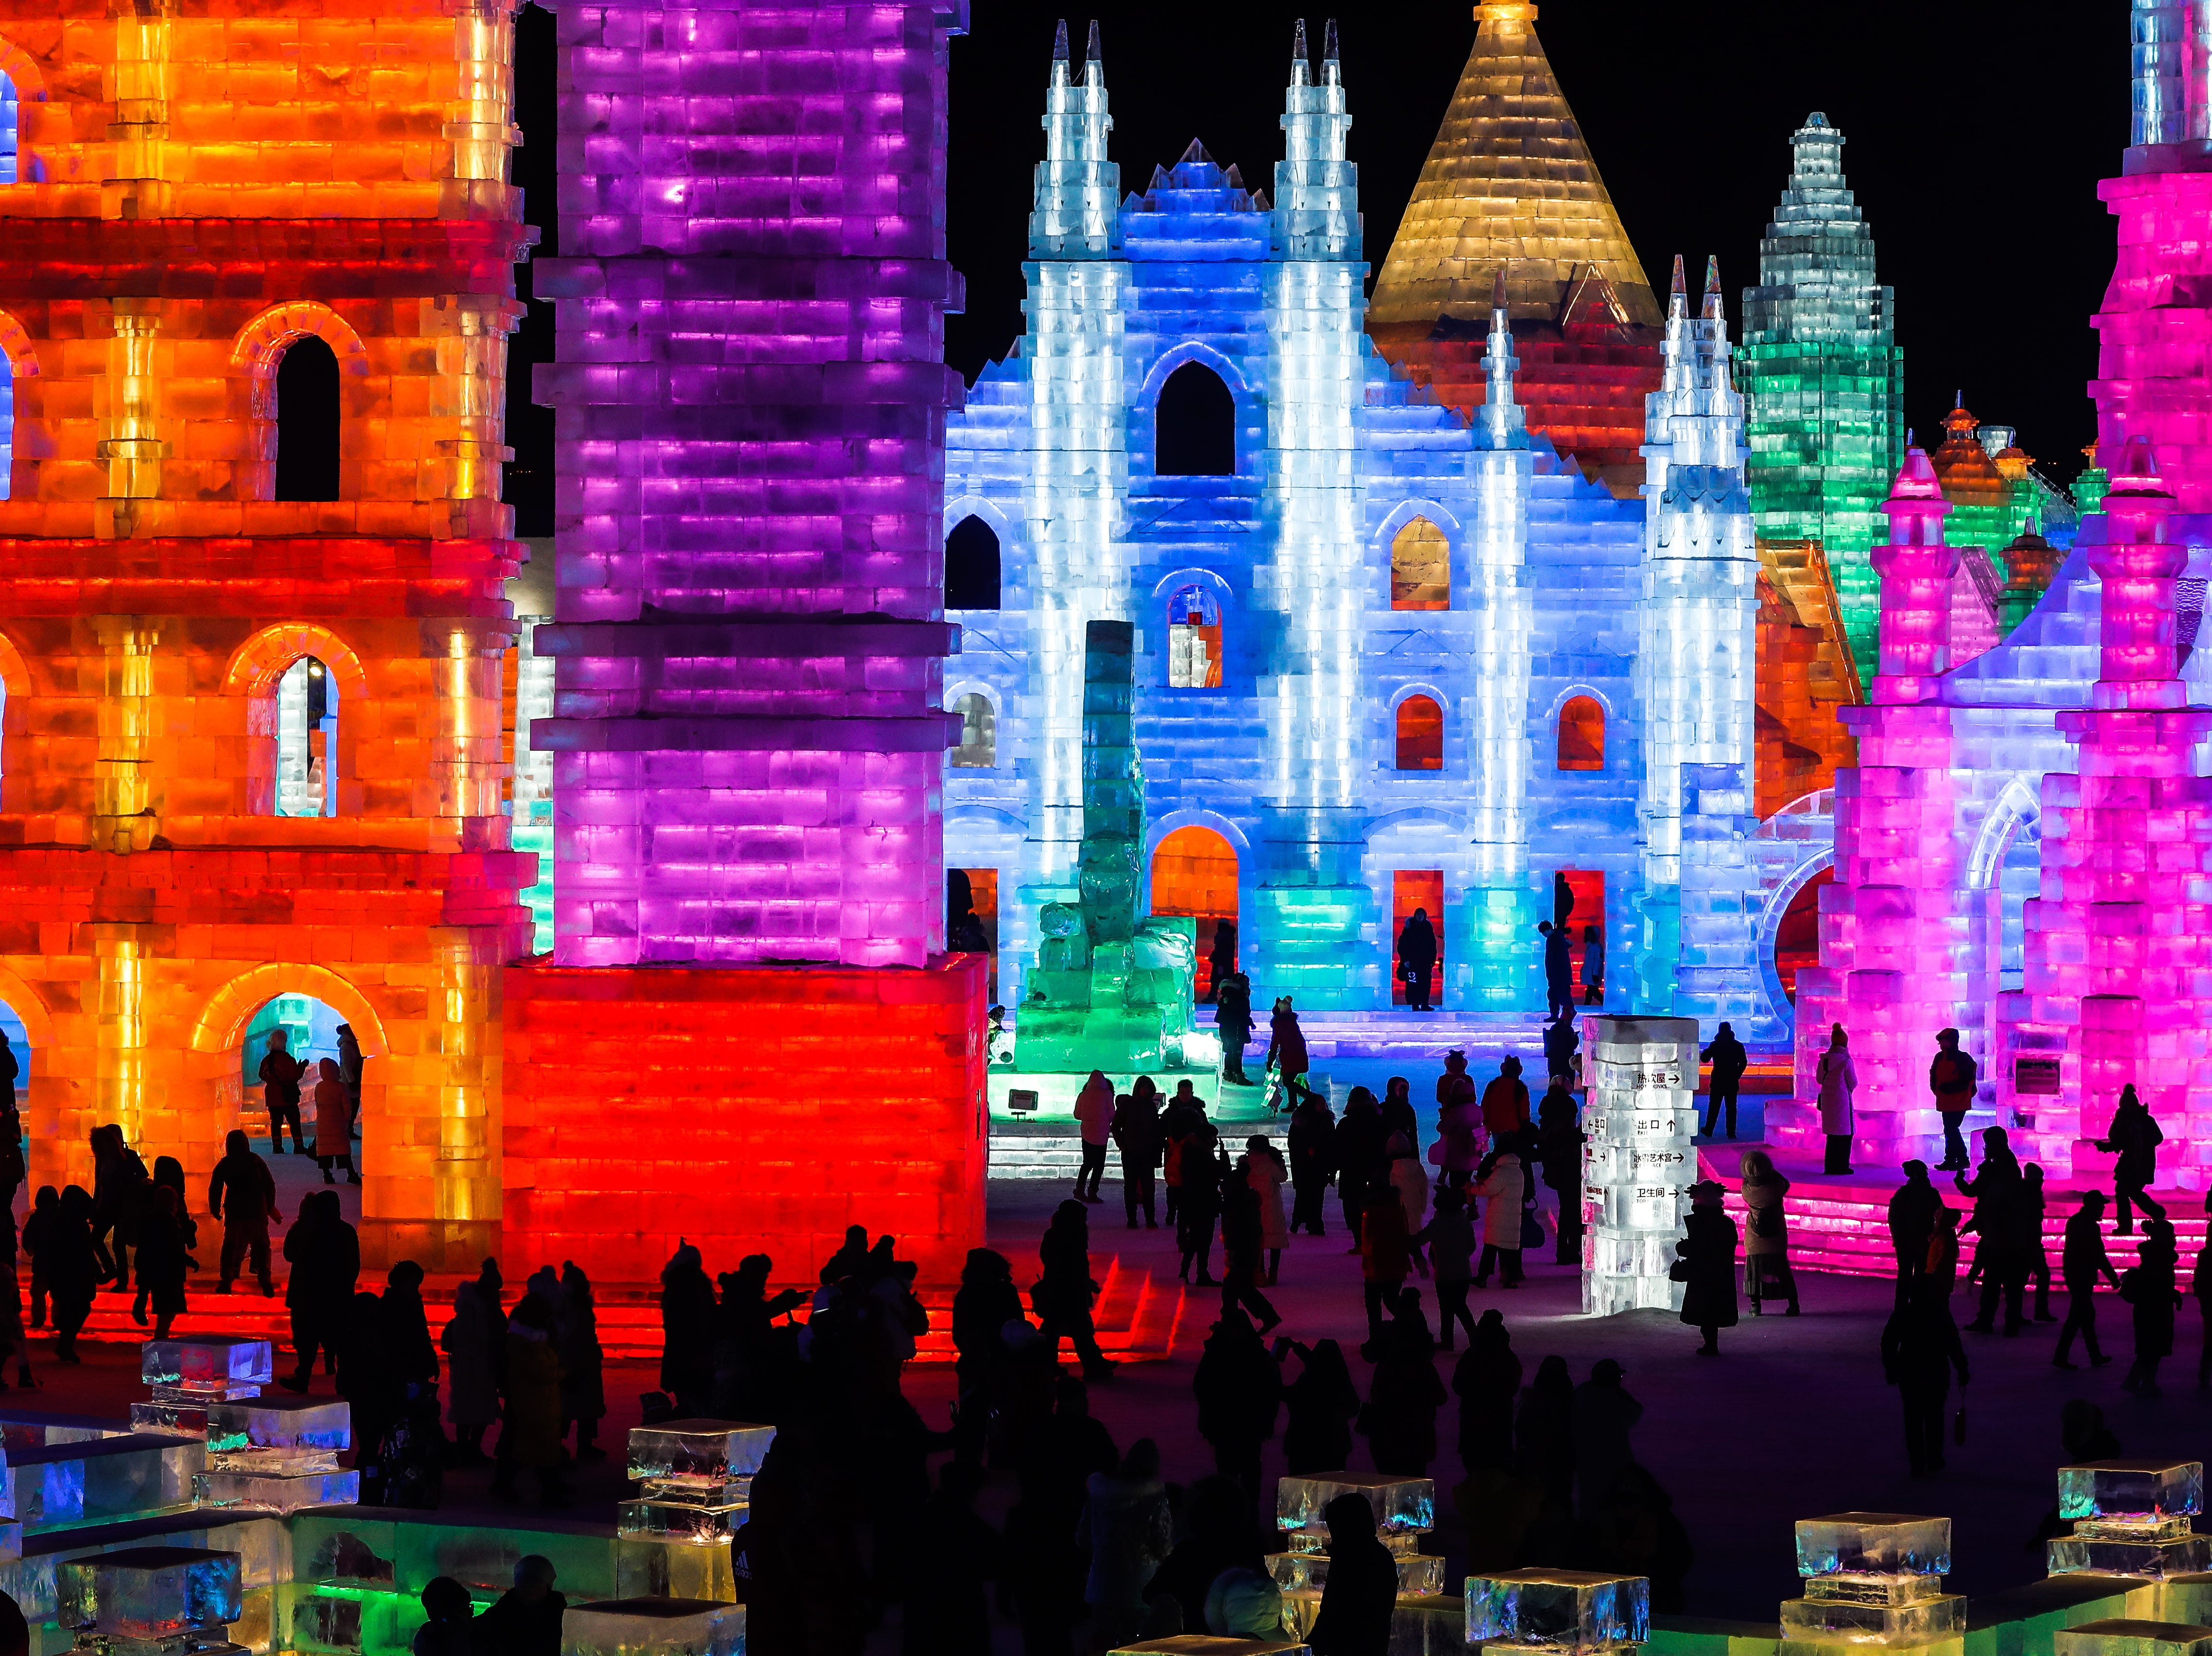 People visit ice sculptures illuminated by colored lights at the Ice and Snow World during the opening ceremony of the annual Harbin International Ice and Snow Sculpture Festival, in Harbin, Heilongjiang province, China on Jan. 5, 2019. Some 120,000 cubic meters of ice and 111,000 cubic meters of snow were used to build the venue of the festival that officially runs from January 5 to February 5.